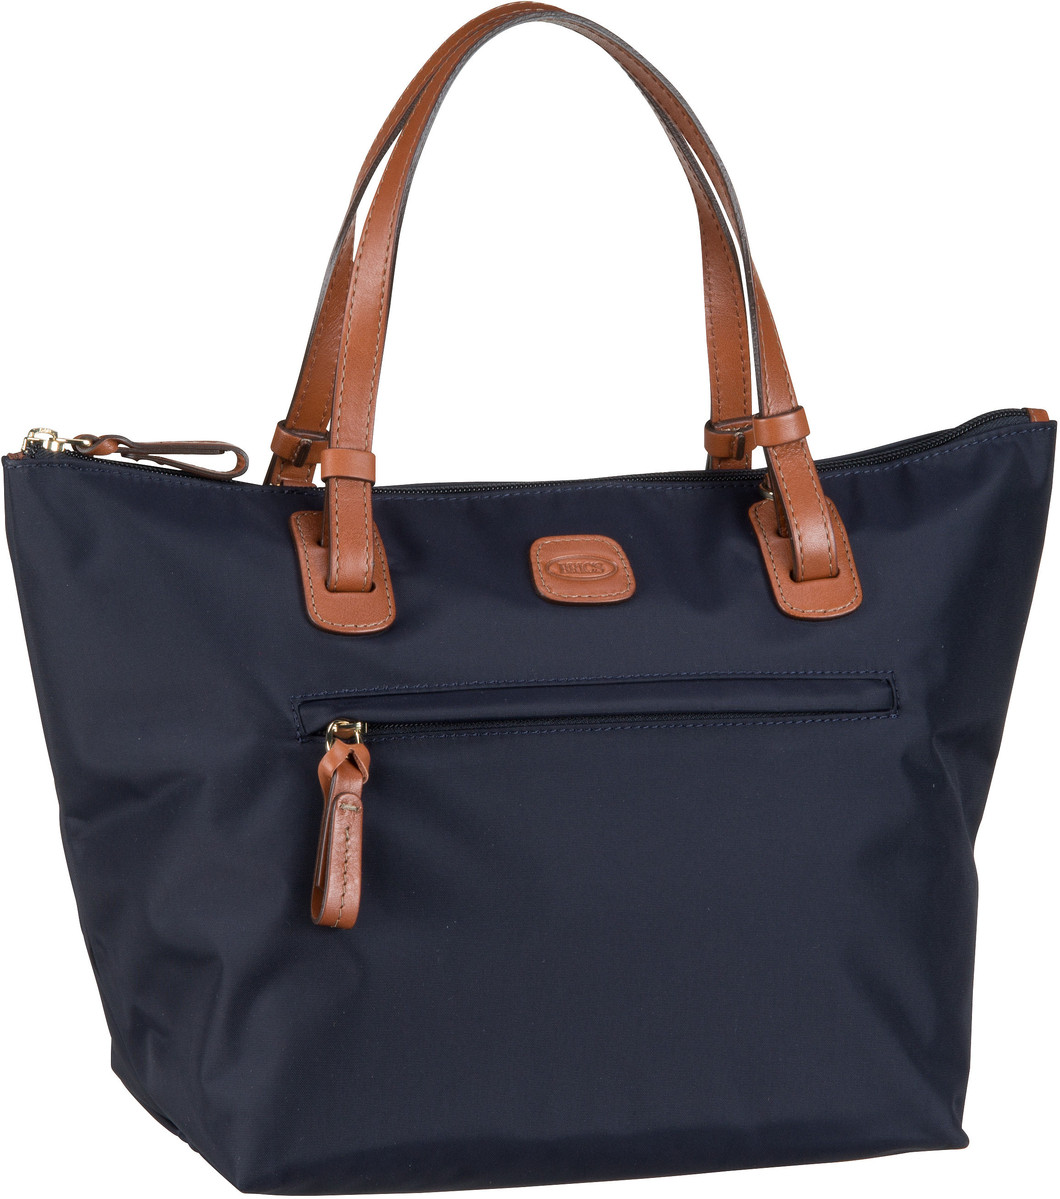 's Handtasche X-Bag Shopper 45072 Oceano